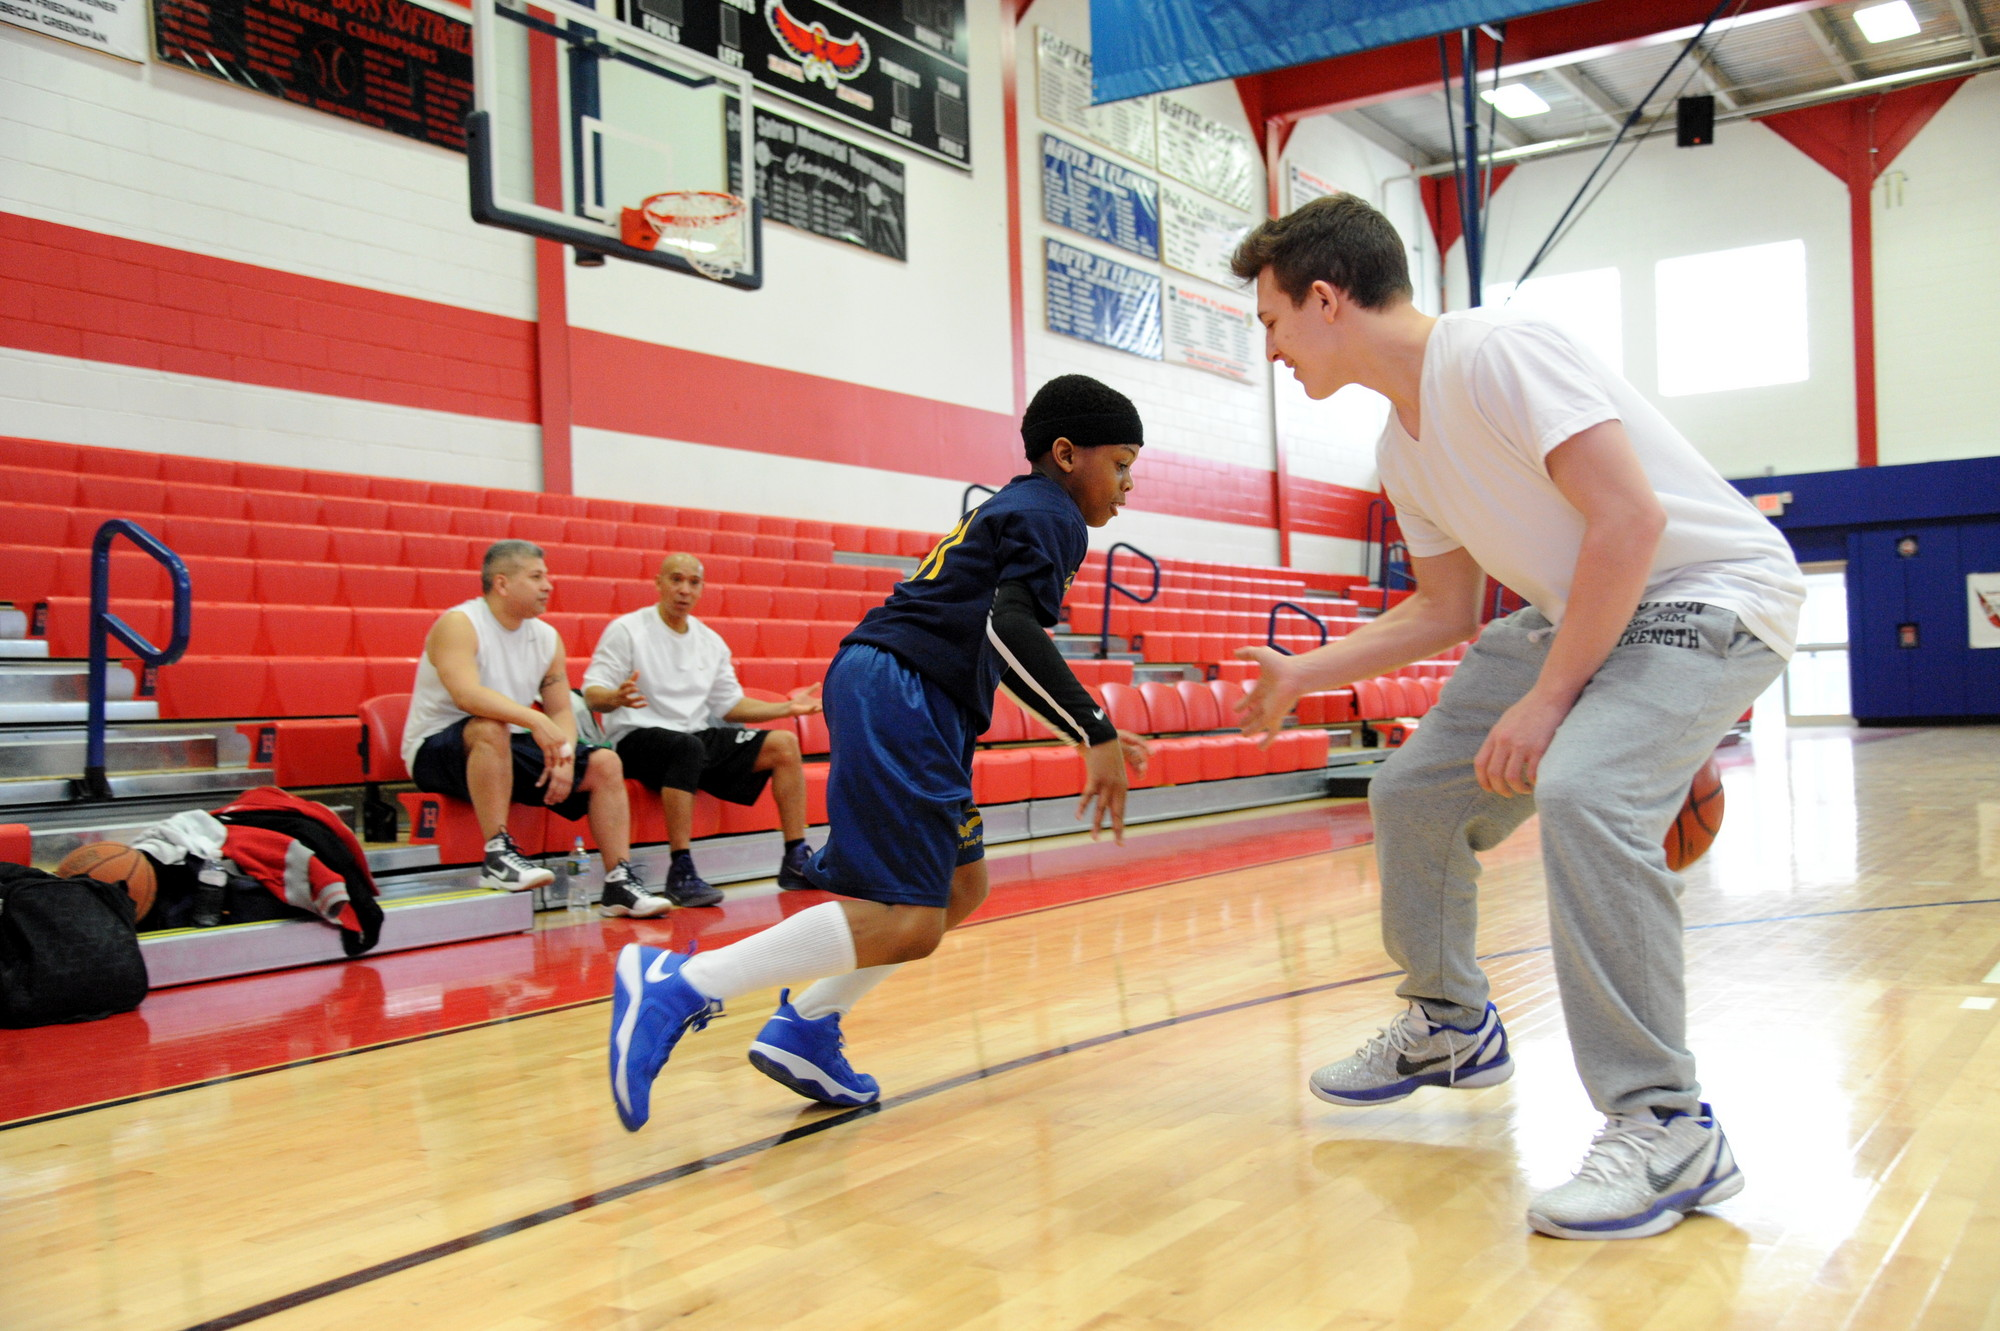 Younger players showed off their skills as Parker Myers dribbled around Josh Netto-Rosen.